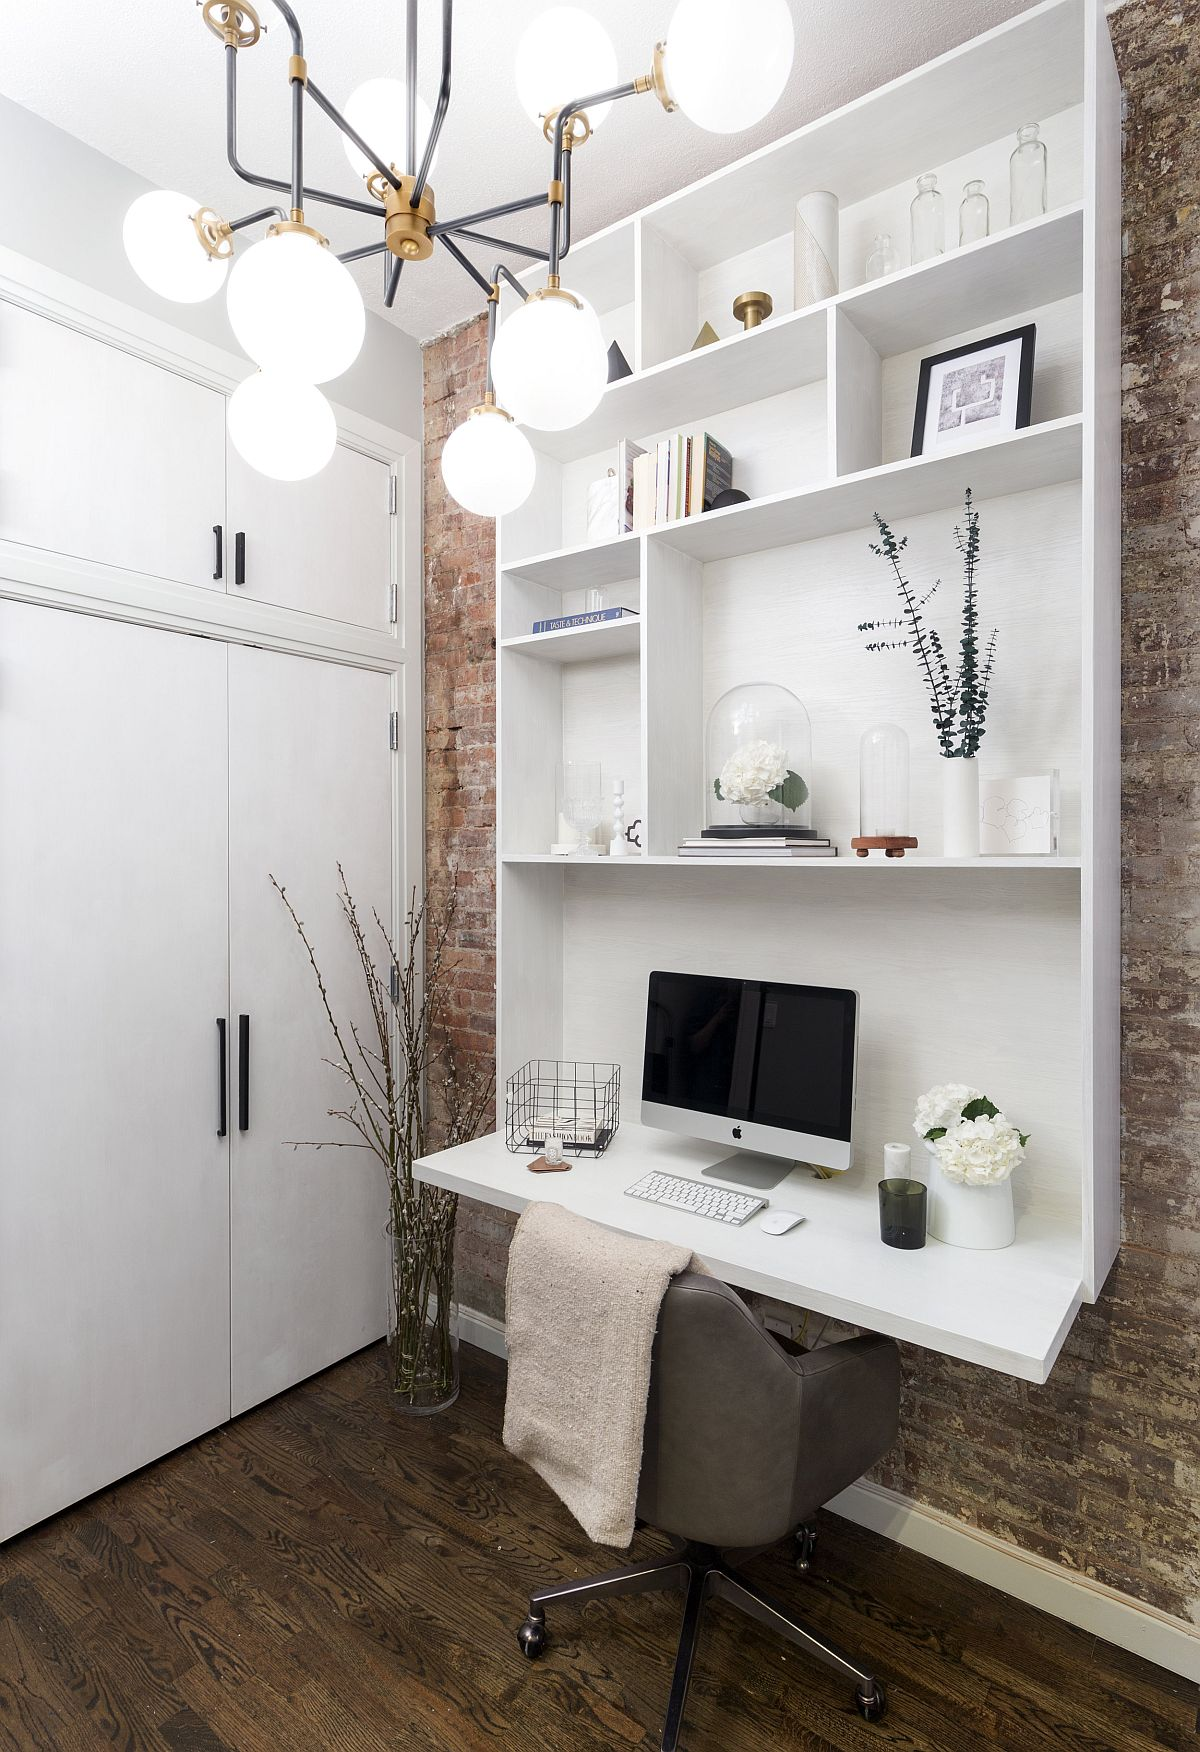 Small-space-savvy-home-office-with-brick-walls-and-custom-white-wall-unit-that-also-acts-as-work-desk-98224